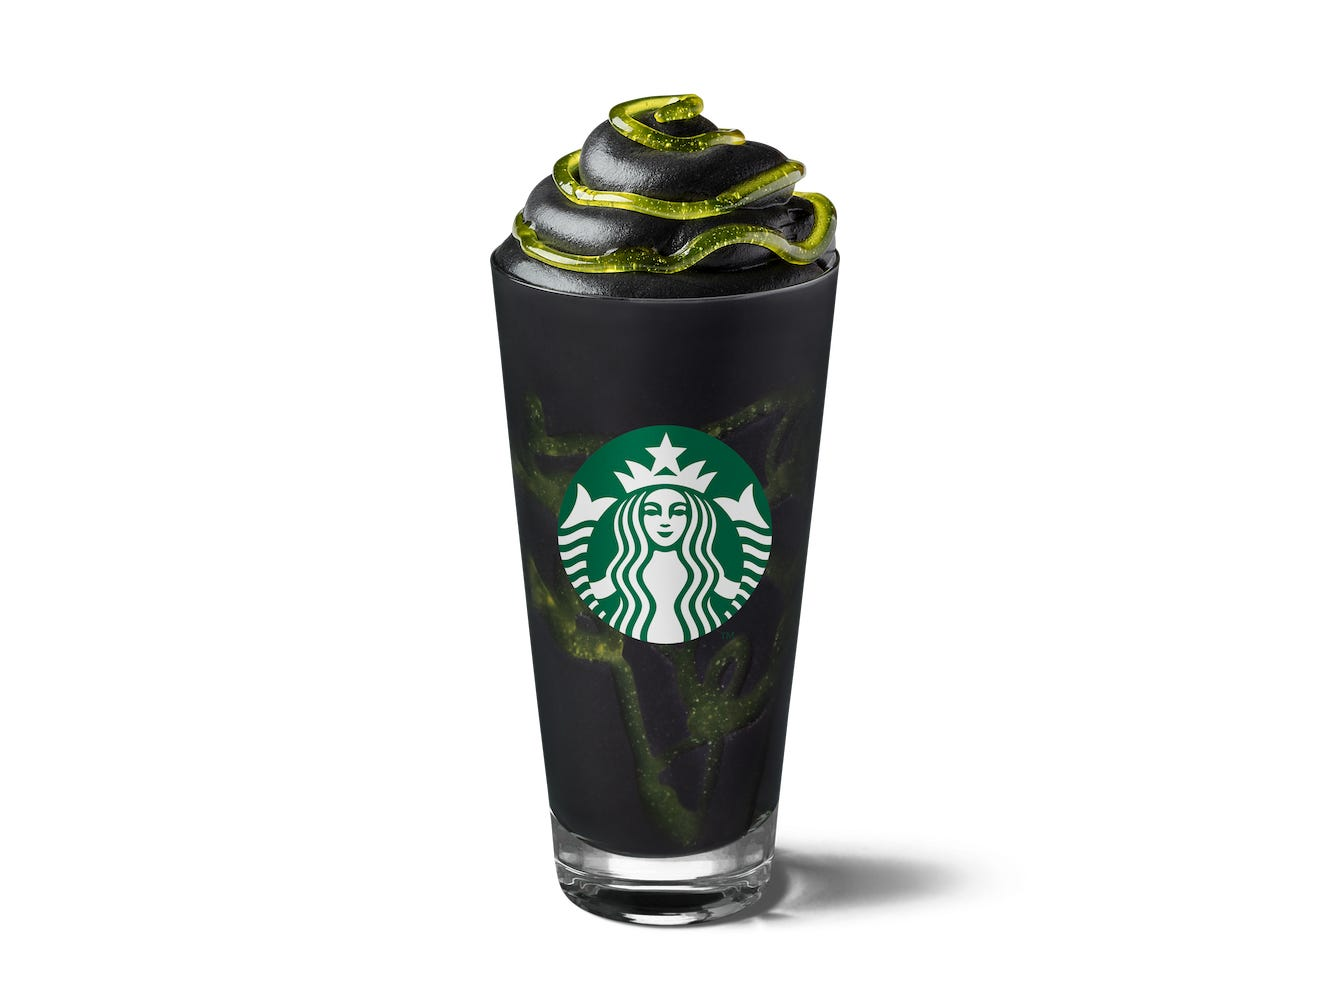 Starbucks's Black 'Phantom Frappuccino' Looks Like a Drinkable Goosebumps Cover